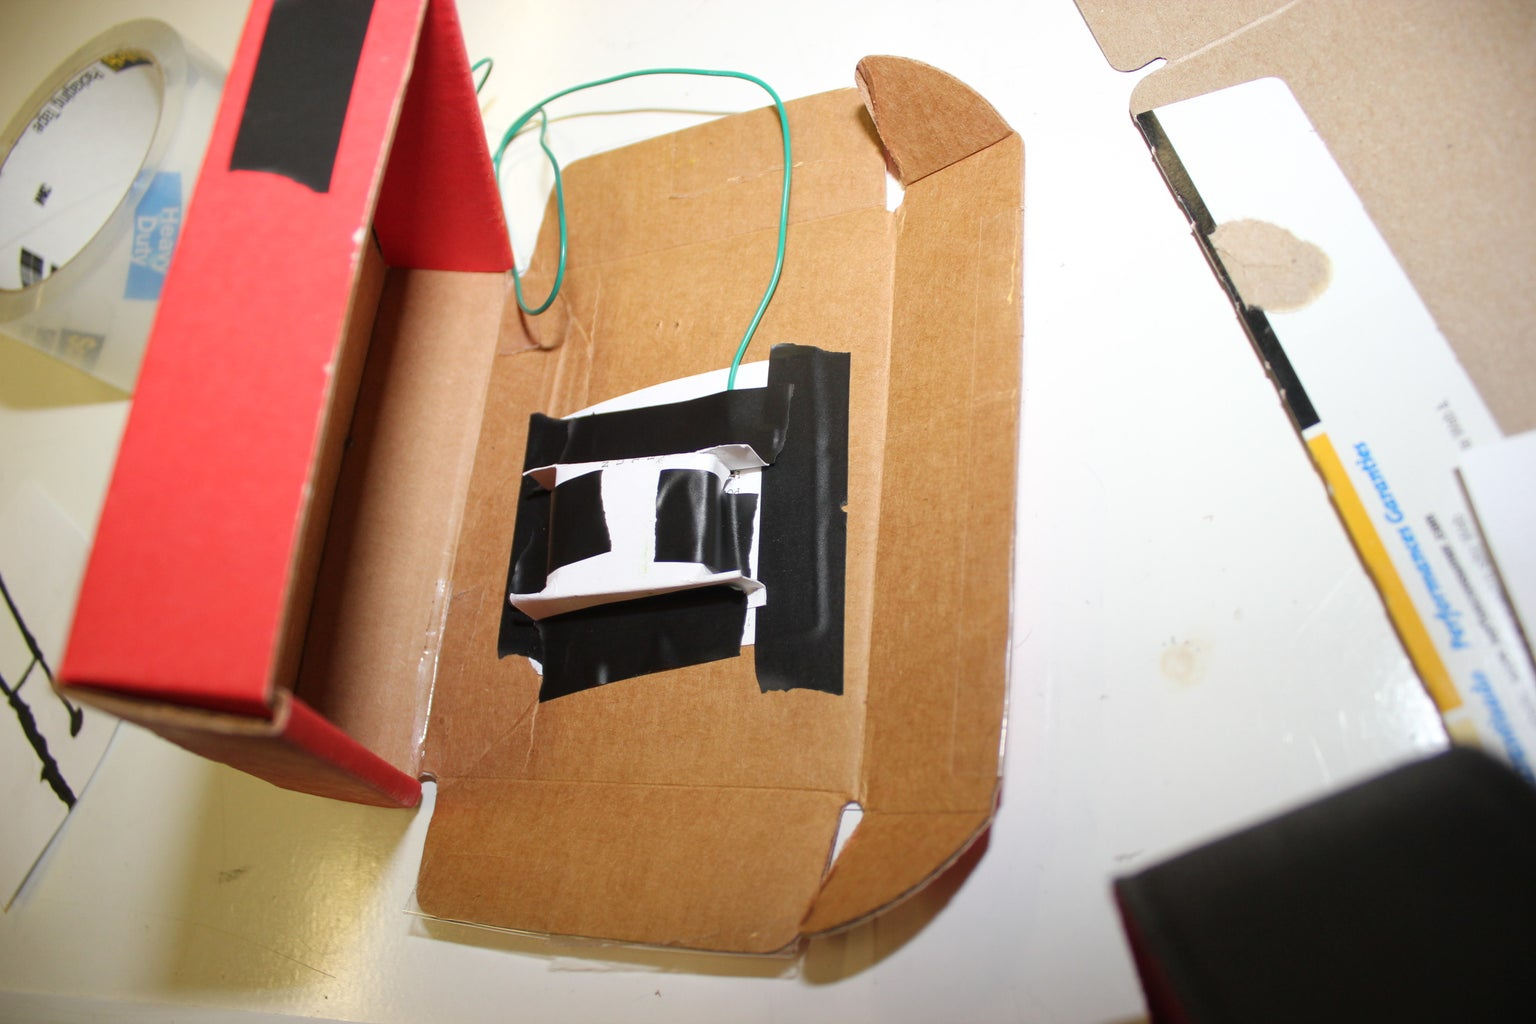 Step 007 - Tape the Box Inside the Larger Box